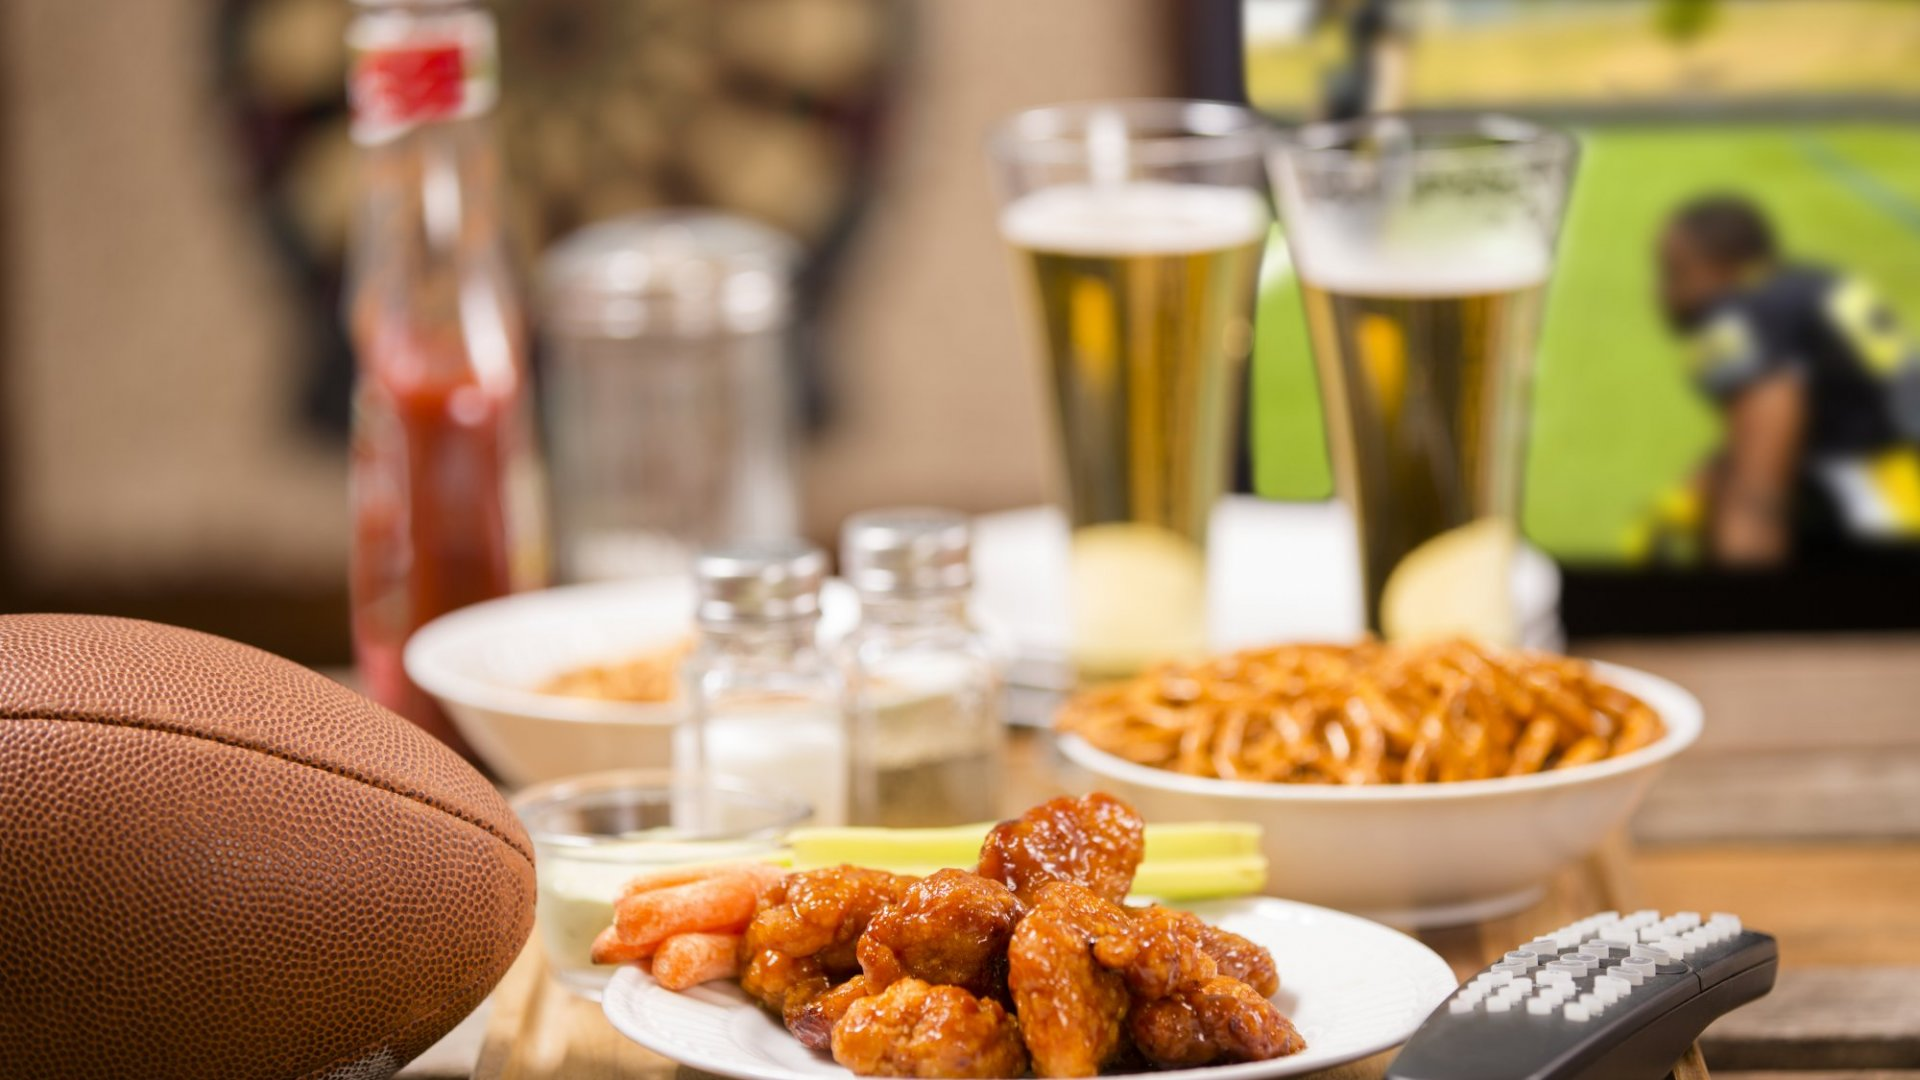 Sports bars seems to attract noise complaints. How odd.